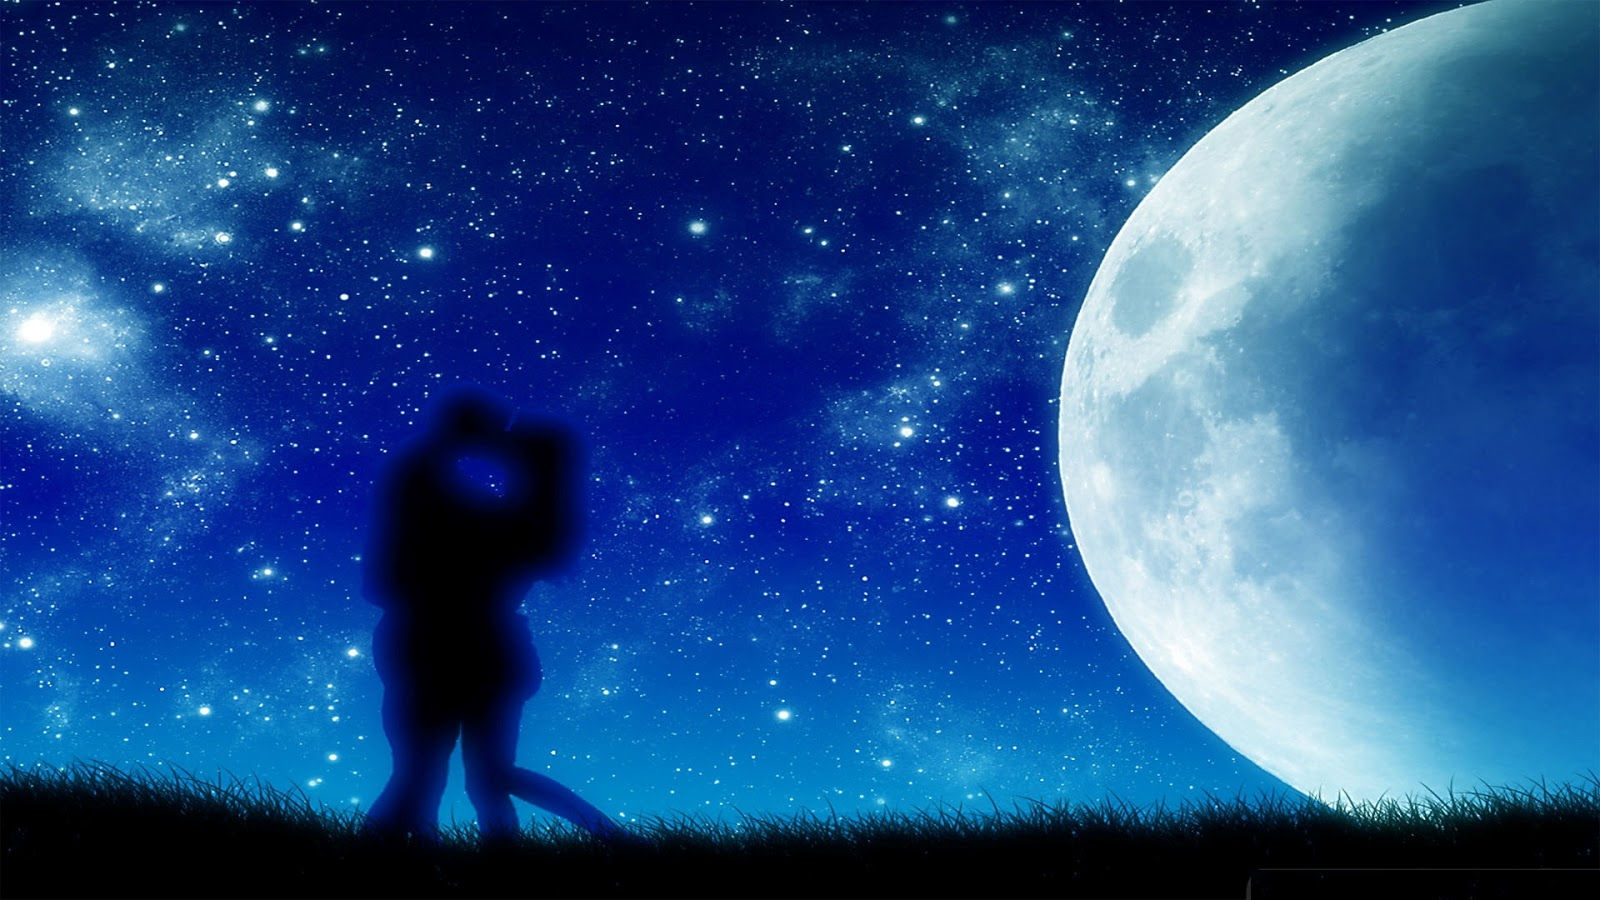 Romantic Love Wallpapers For Pc : Moonlight Super HD Wallpapers - Pc,Laptop,Playbook,iPad ...